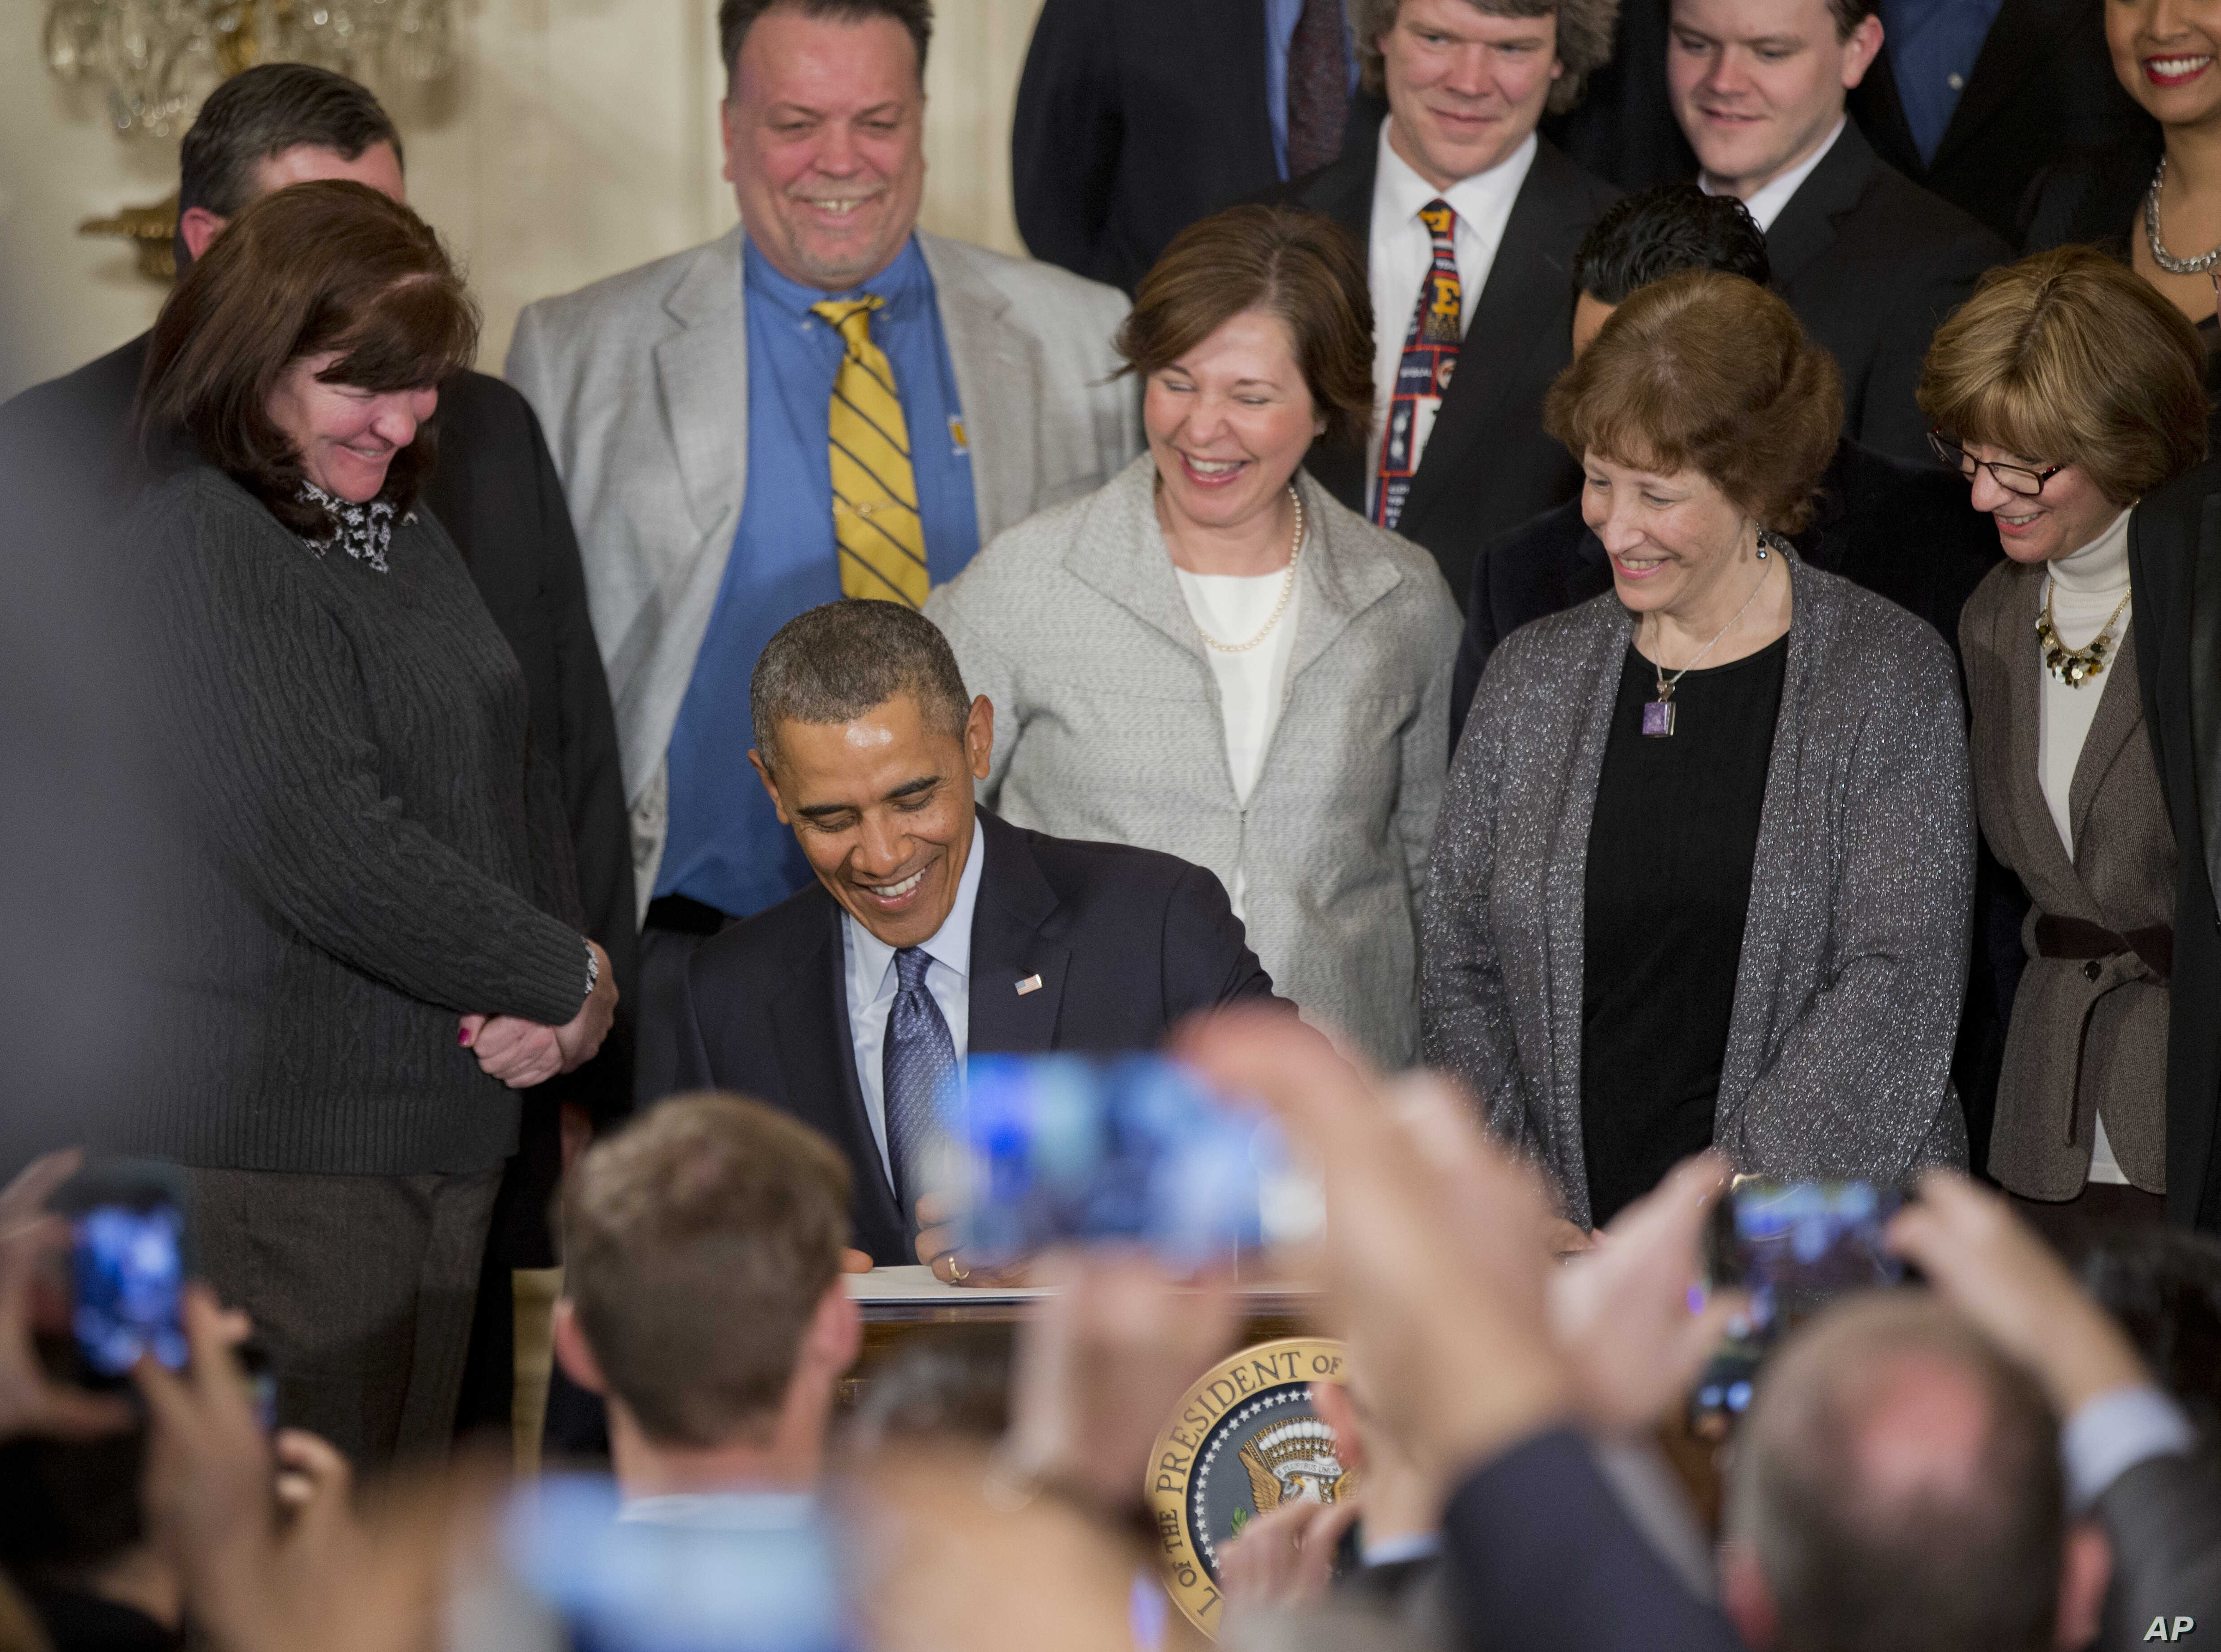 President Barack Obama signs a Presidential Memorandum to modernize overtime protections, in the East Room of the White House in Washington, Mar. 13, 2014.